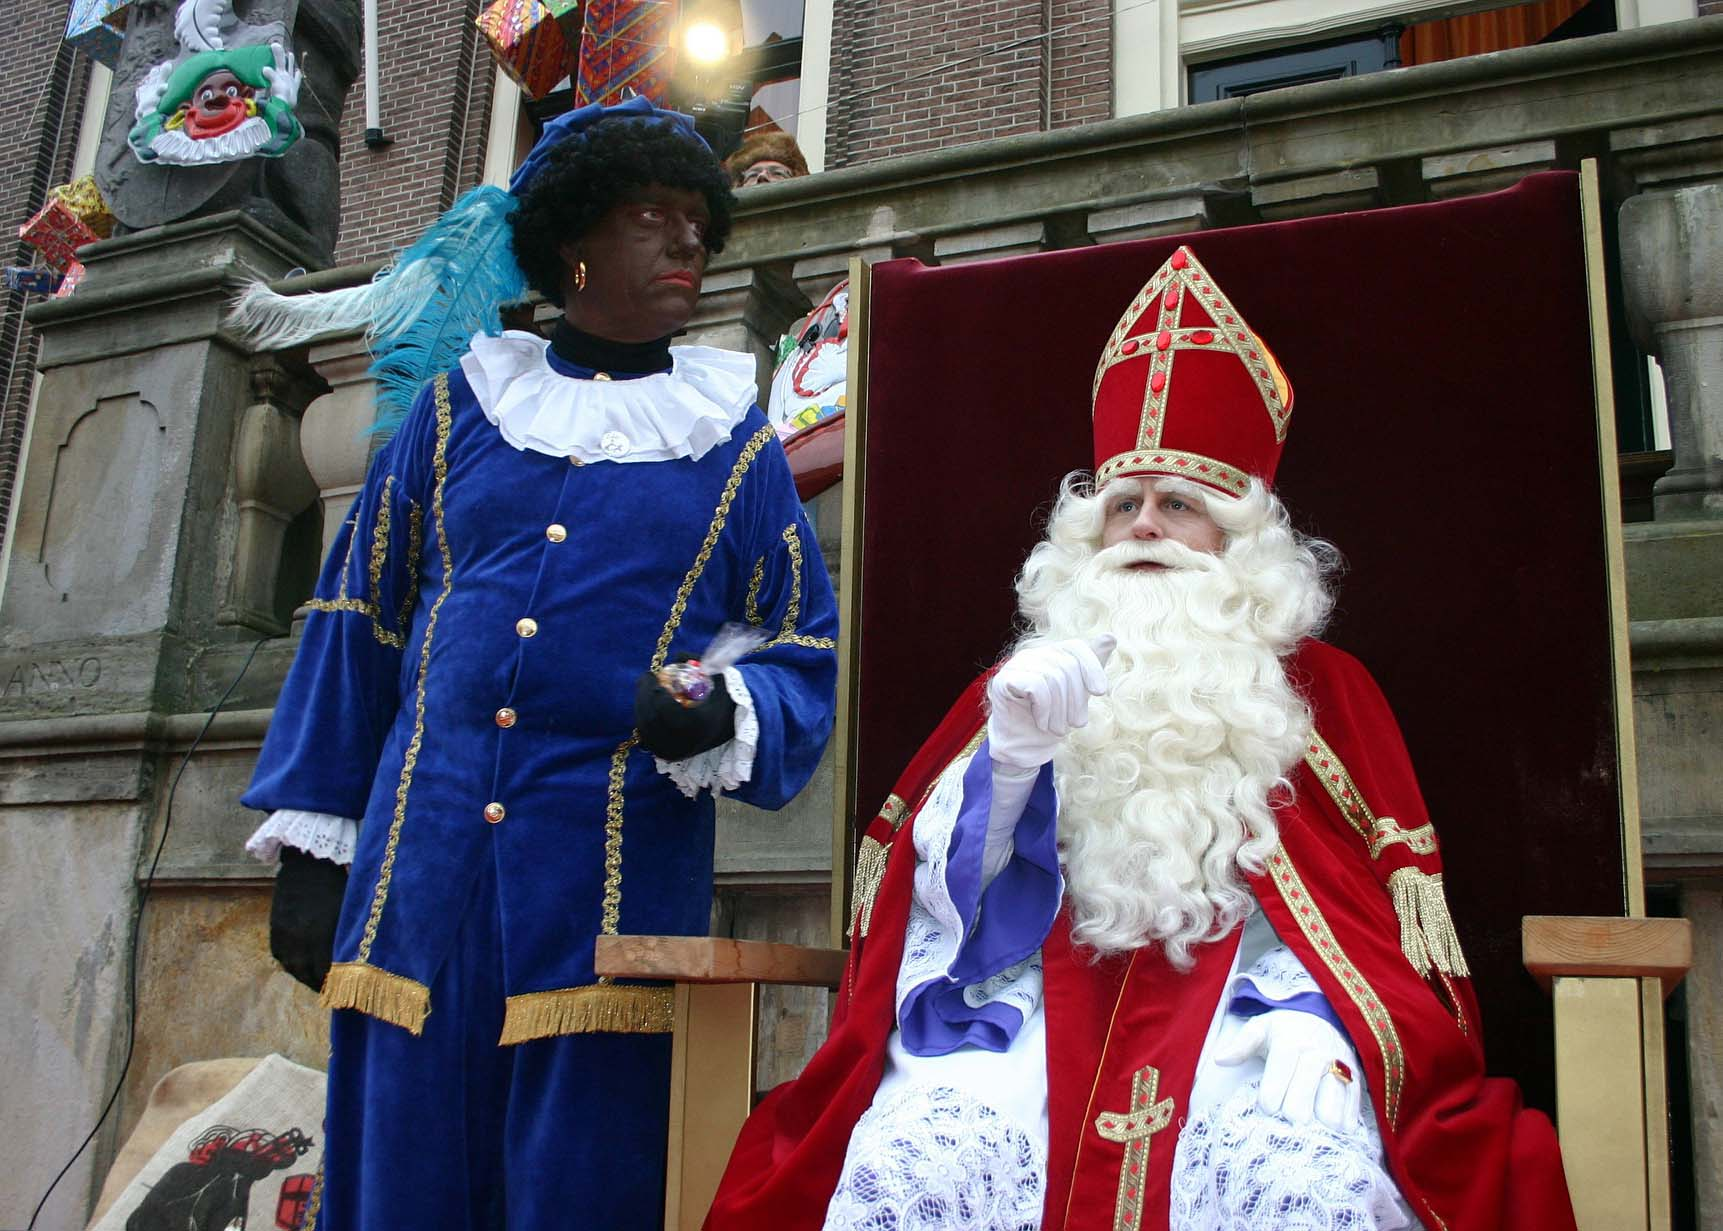 25 Surprising Facts about Christmas in the Netherlands